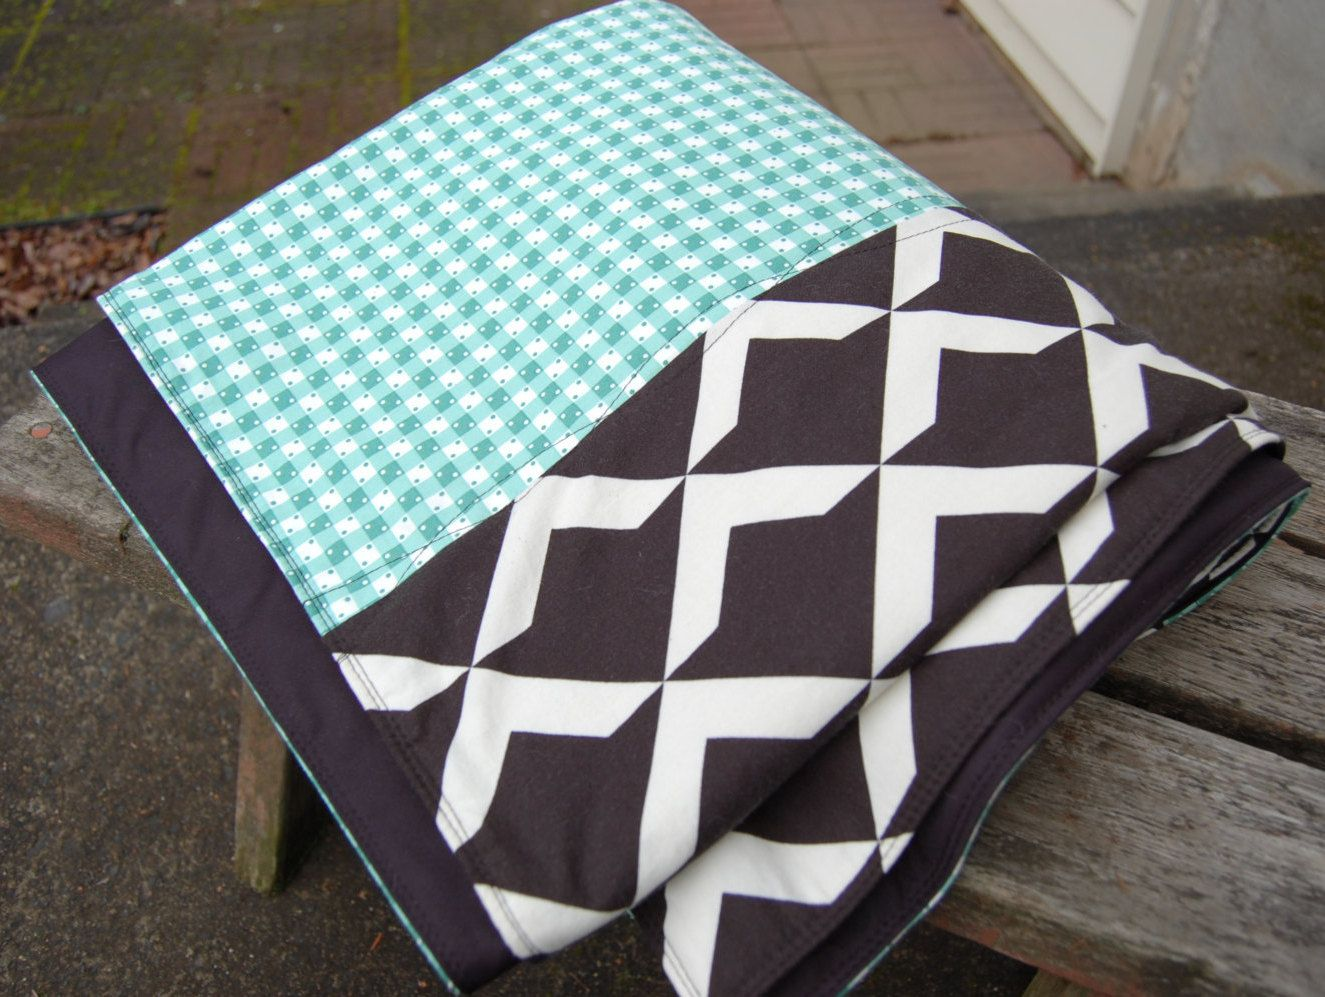 Modern Outdoor Waterproof Picnic Blanket Rug Mint Green Black And White By Poppiezlove On Etsy With Images Waterproof Picnic Blanket Picnic Blanket Indoor Furniture